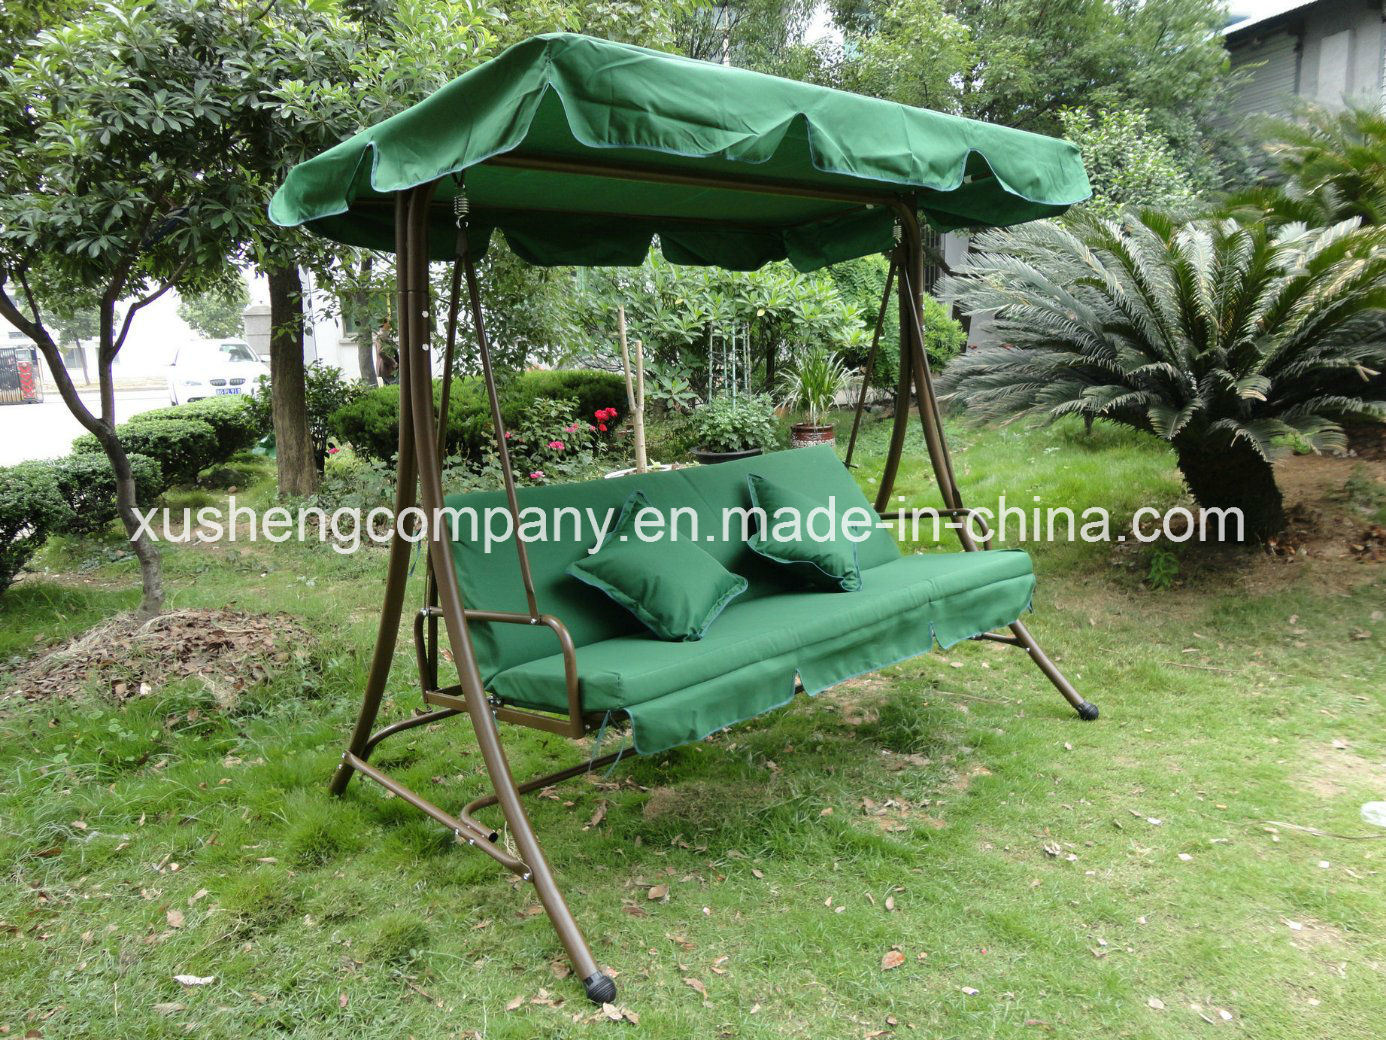 Patio Garden Swing Chair and Bed